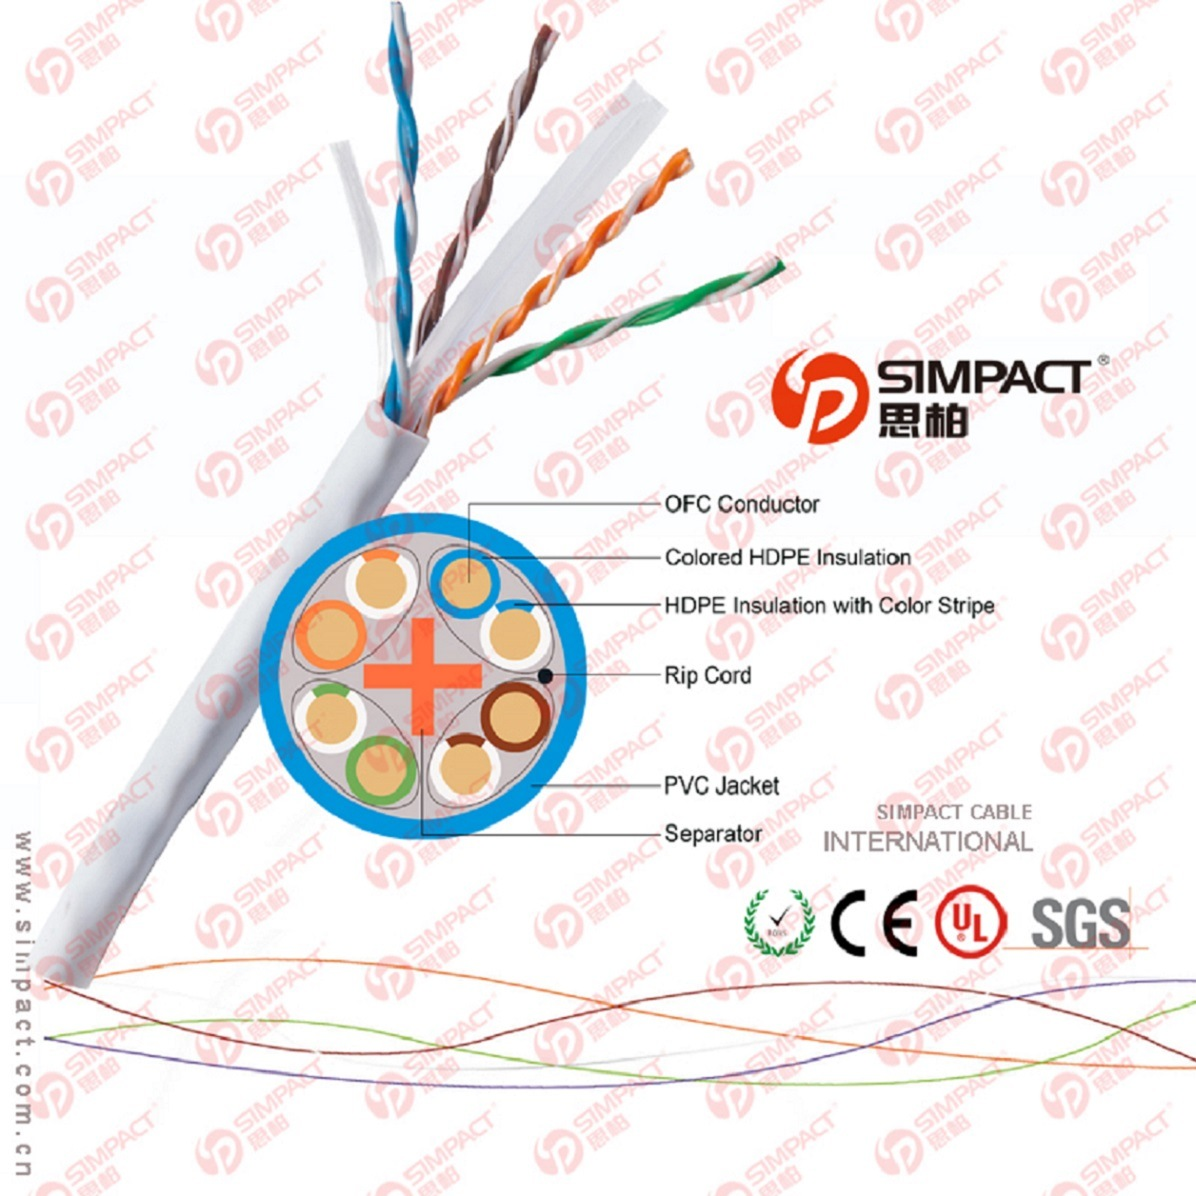 CAT6 Solid Bulk Cable - in-Wall Rated Jacket